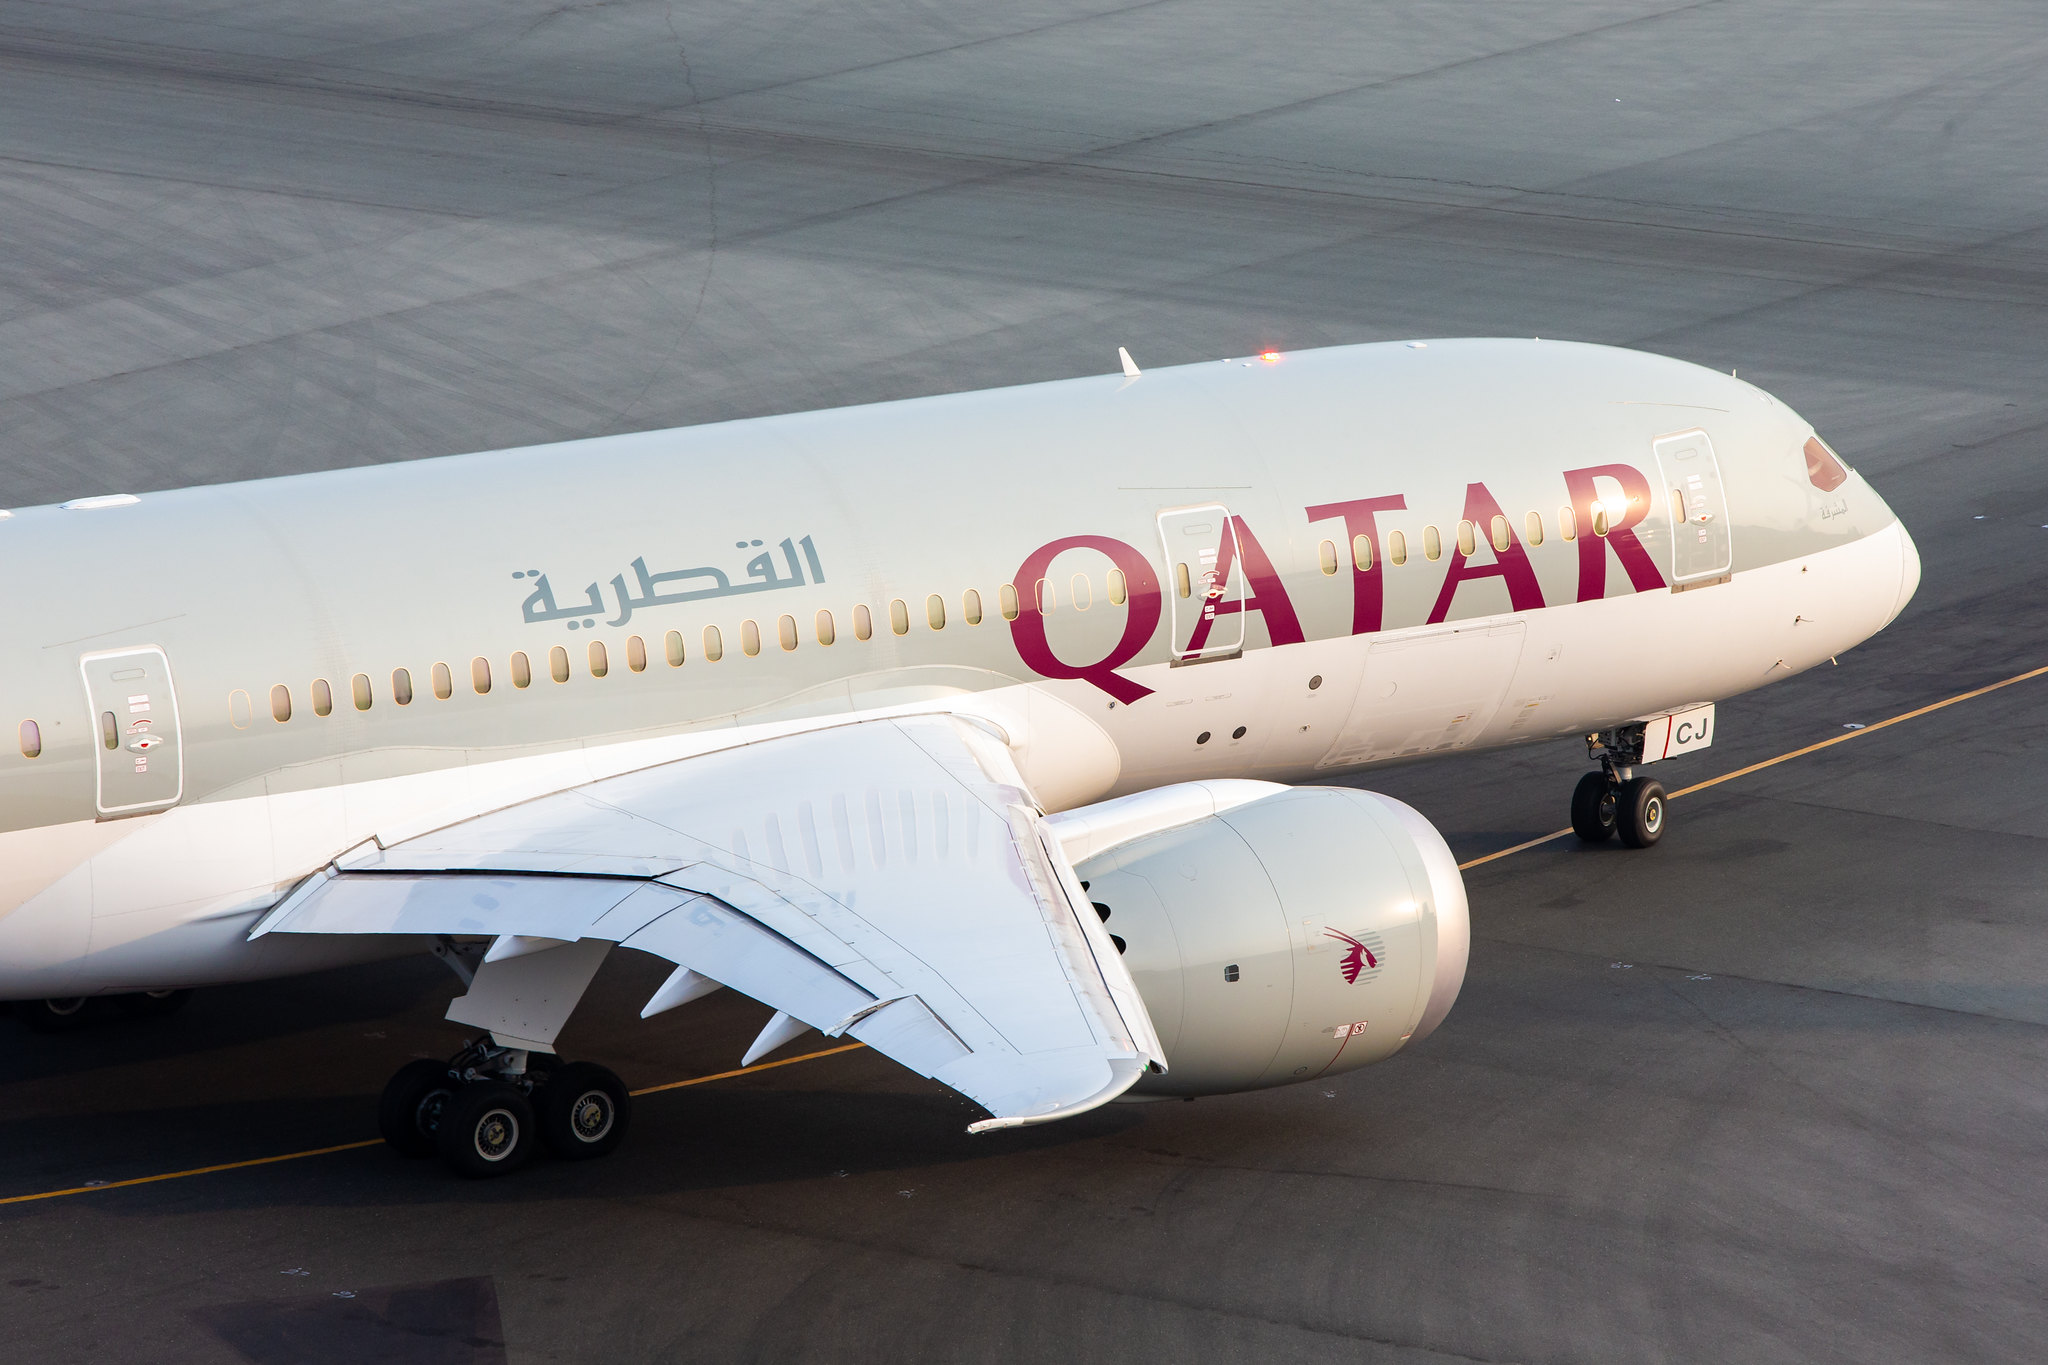 Qatar Airways states that it is not justifiable to operate the A380 - InsideFlyer